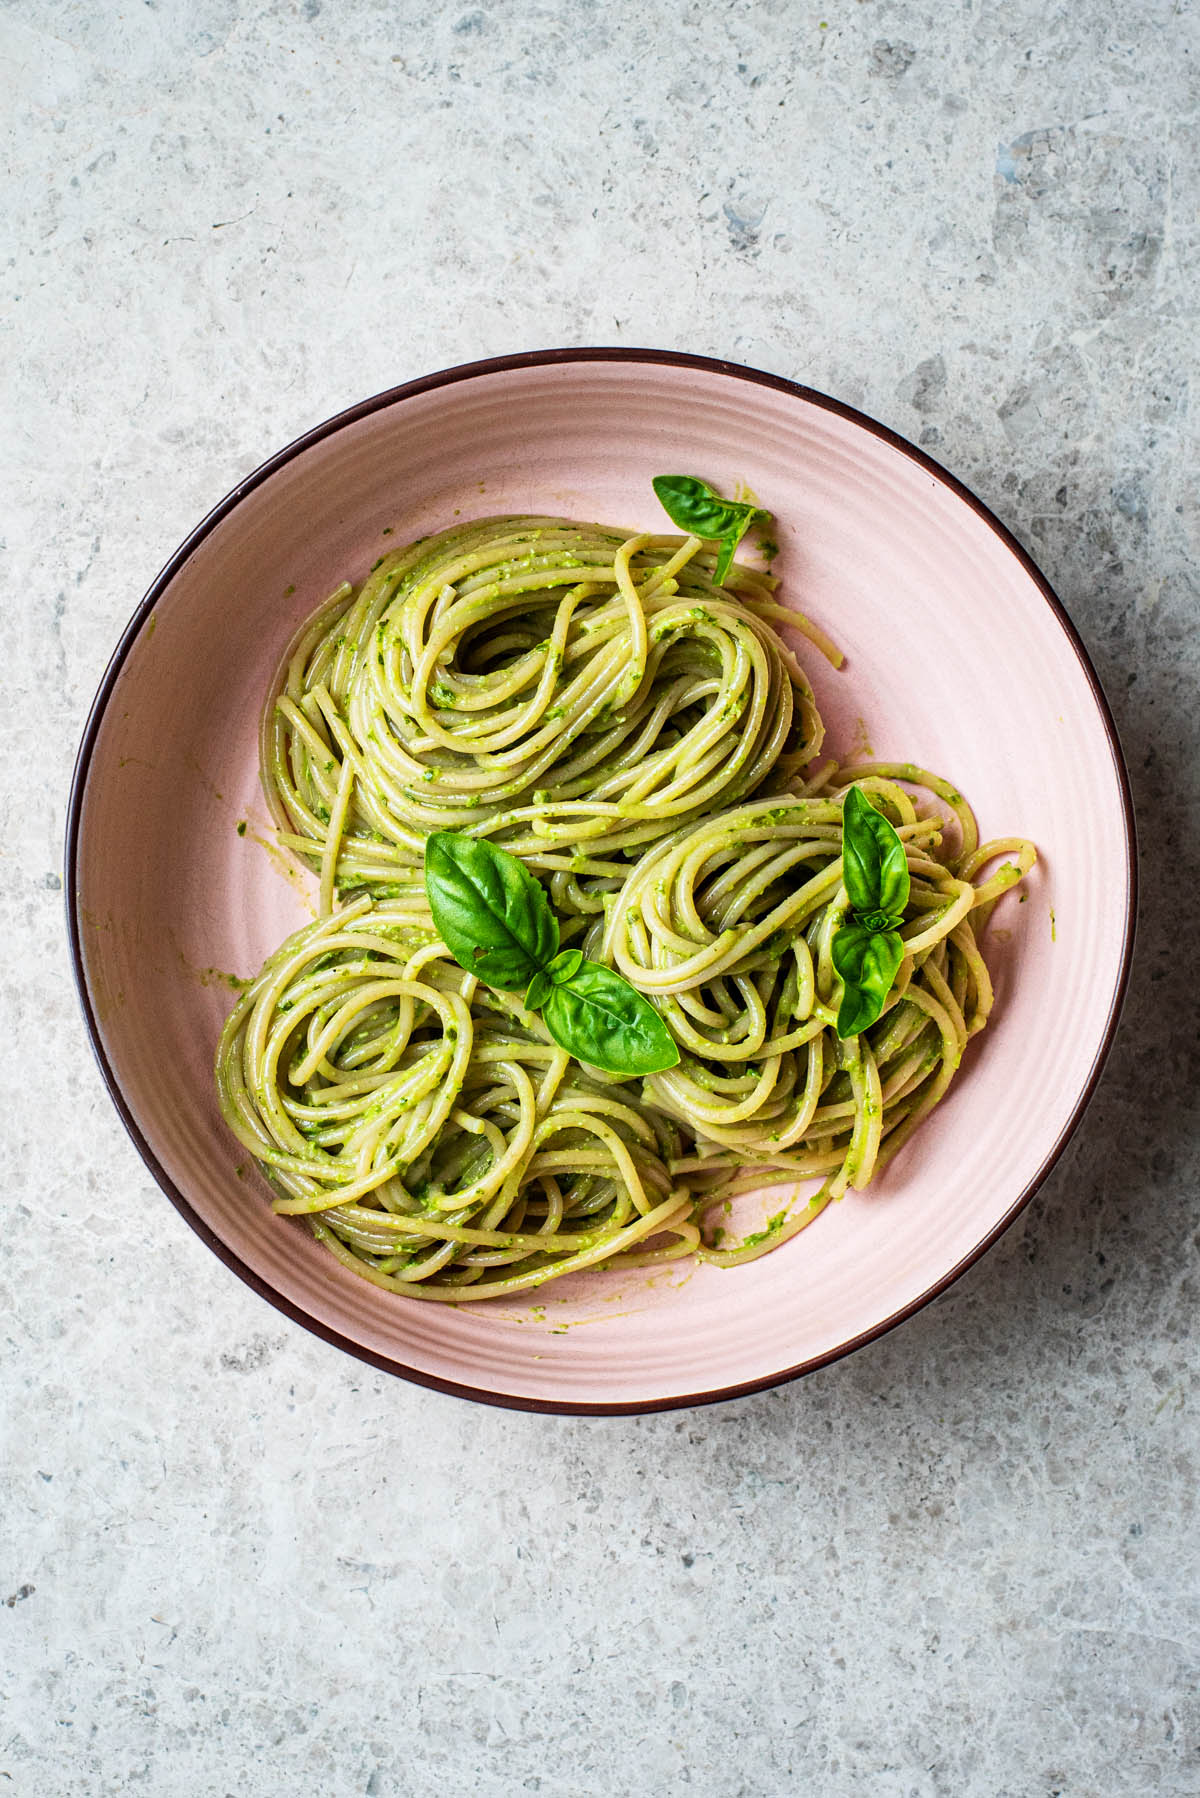 Spaghetti in a shallow bowl with pesto and basil leaves.